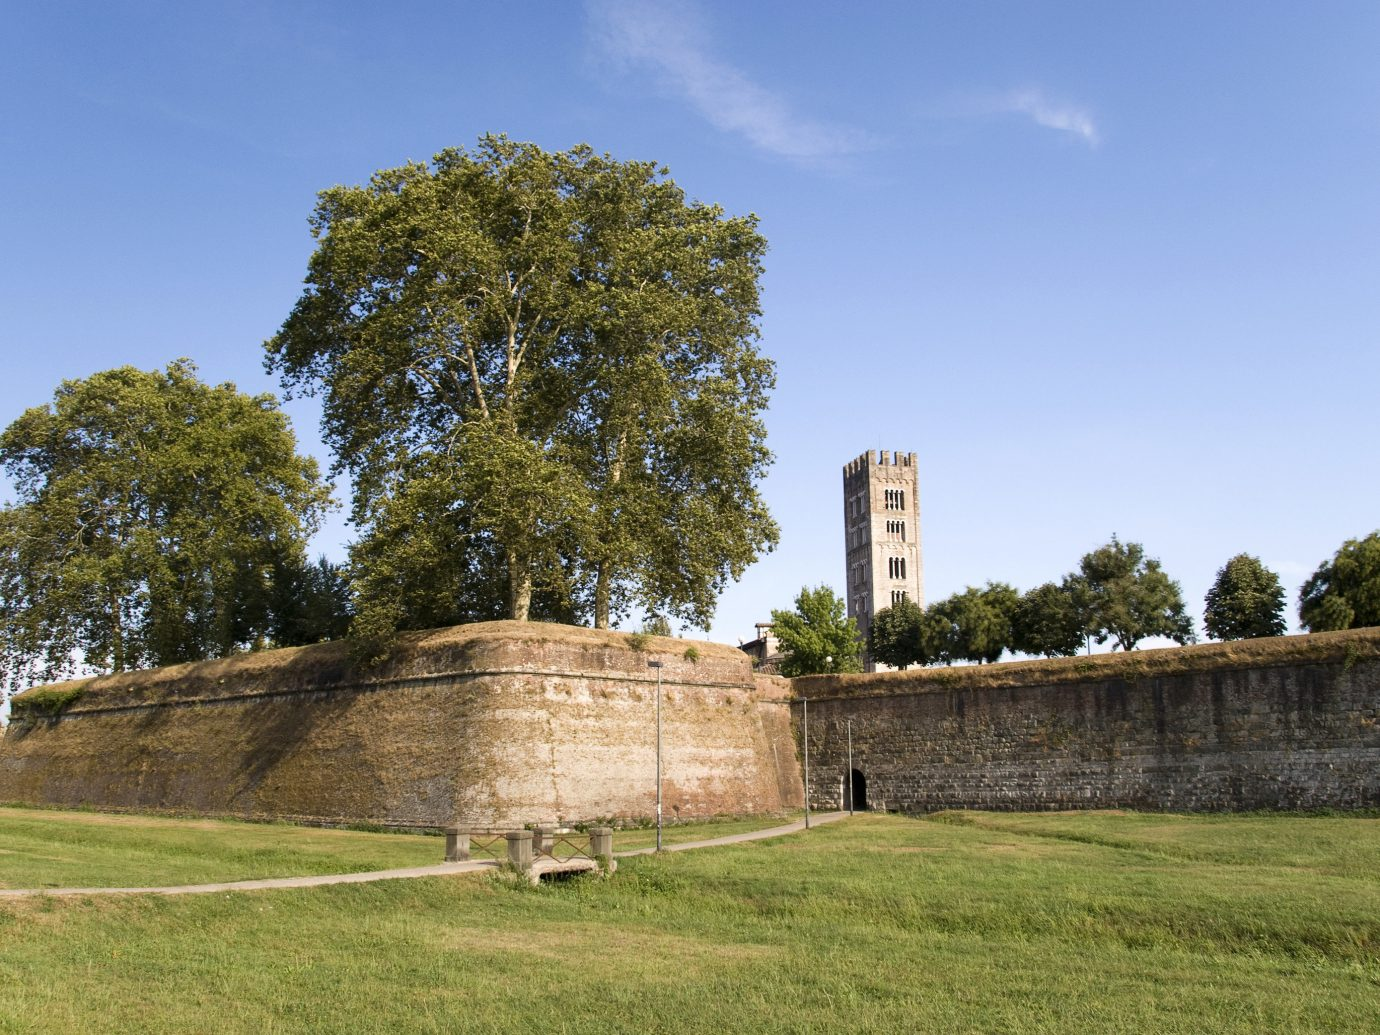 Italy Trip Ideas grass sky outdoor tree wall archaeological site field fortification historic site Ruins ancient history estate landscape grassy pasture lush